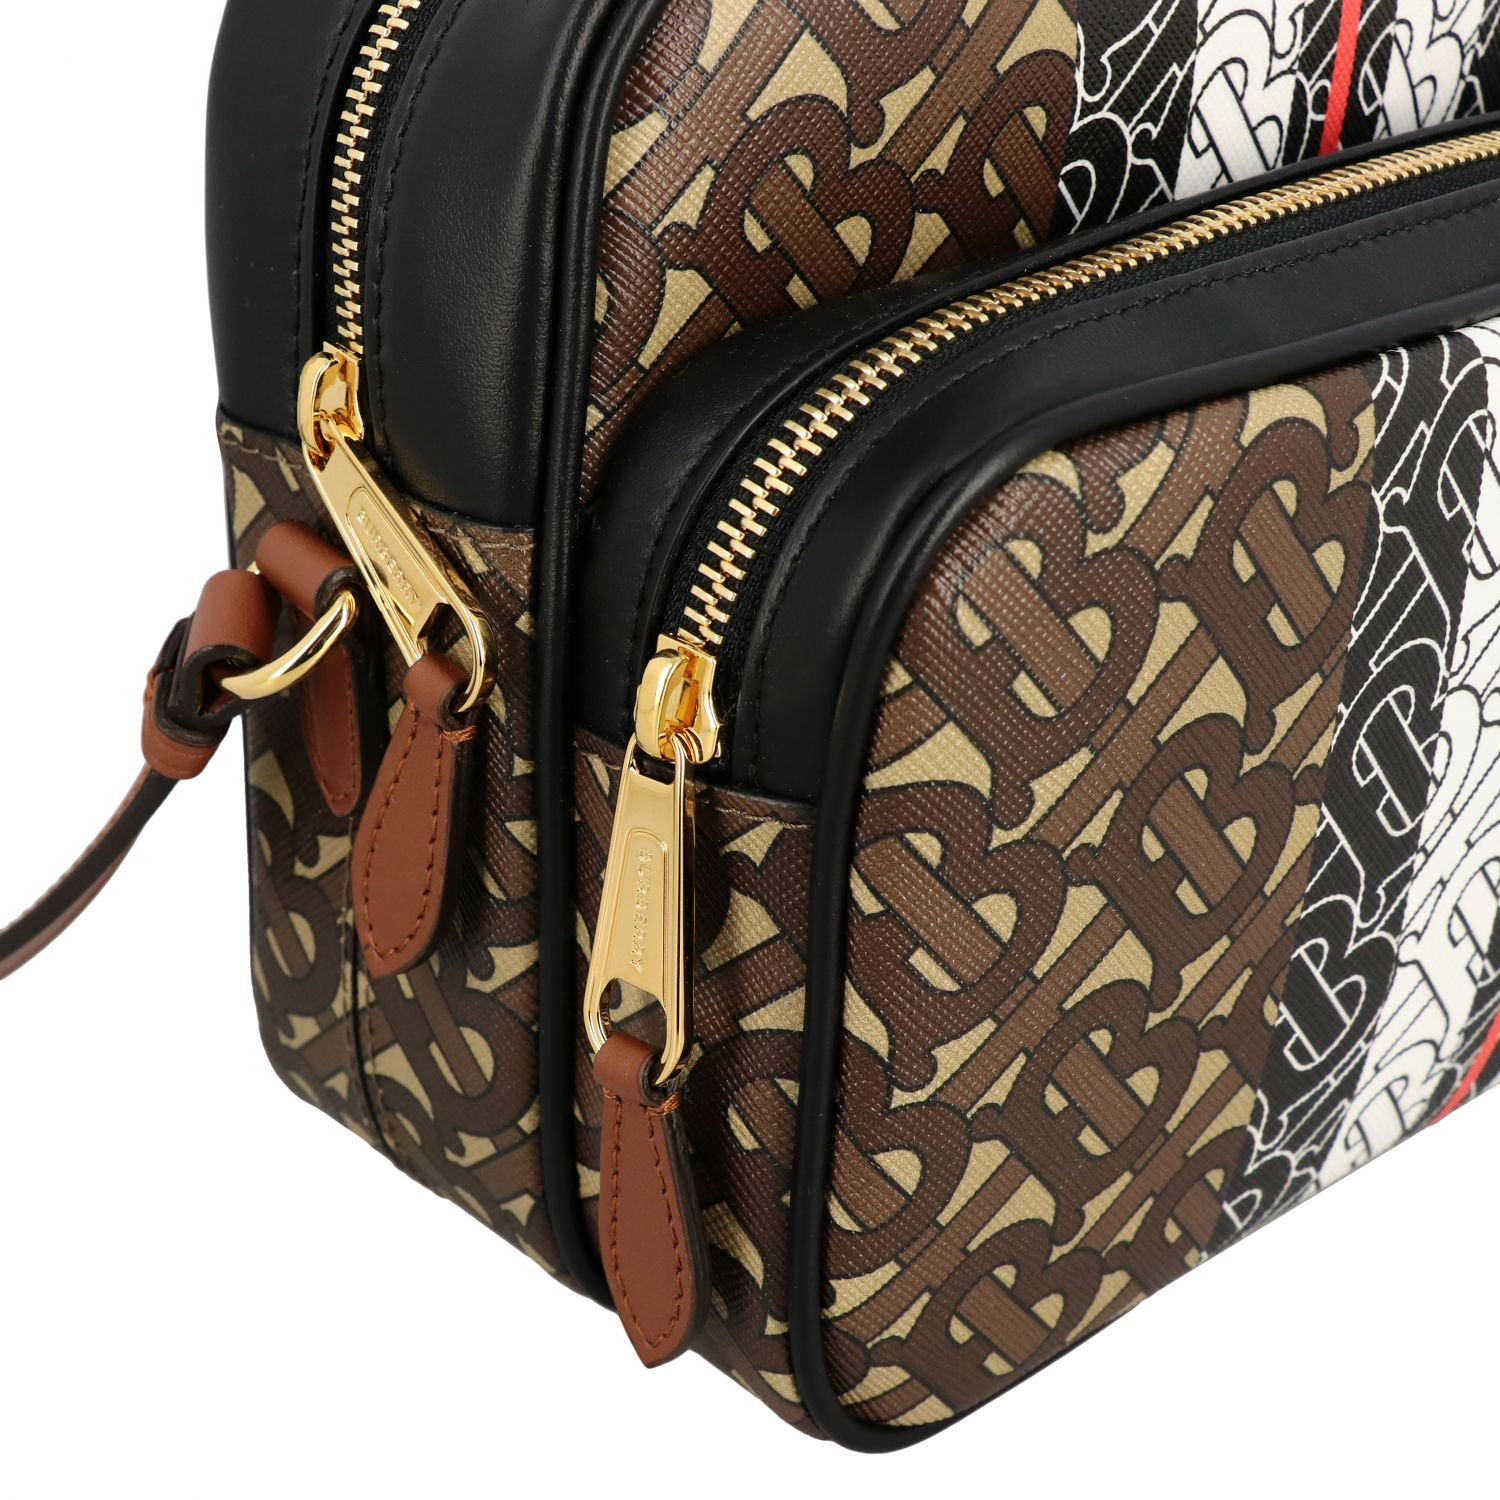 Burberry leather shoulder bag with all over TB print beige 4